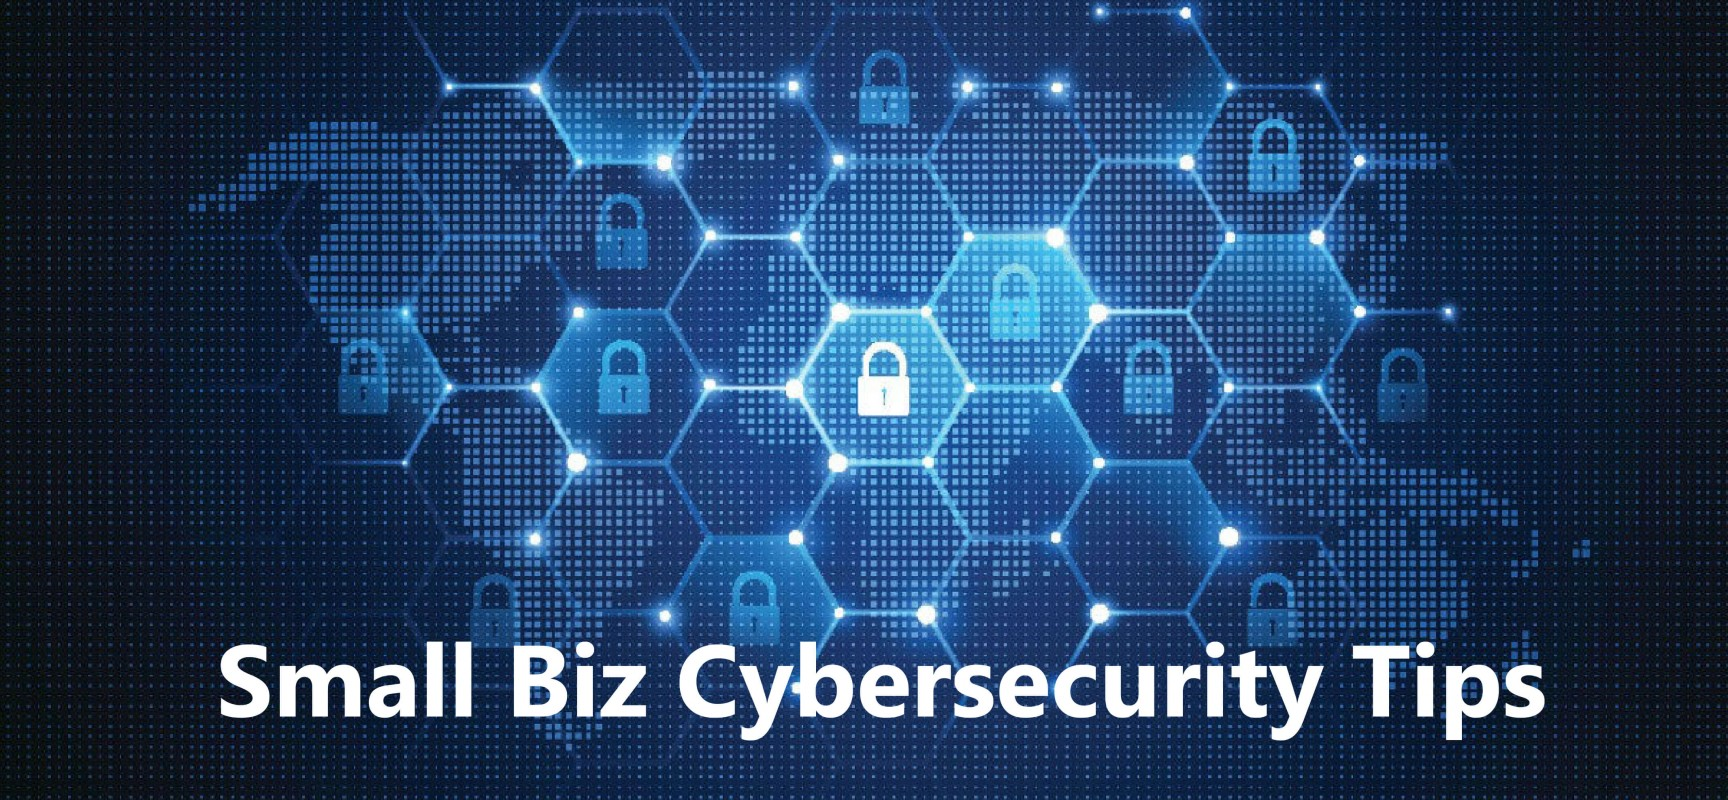 Secure Channels: The best security tips for new businesses